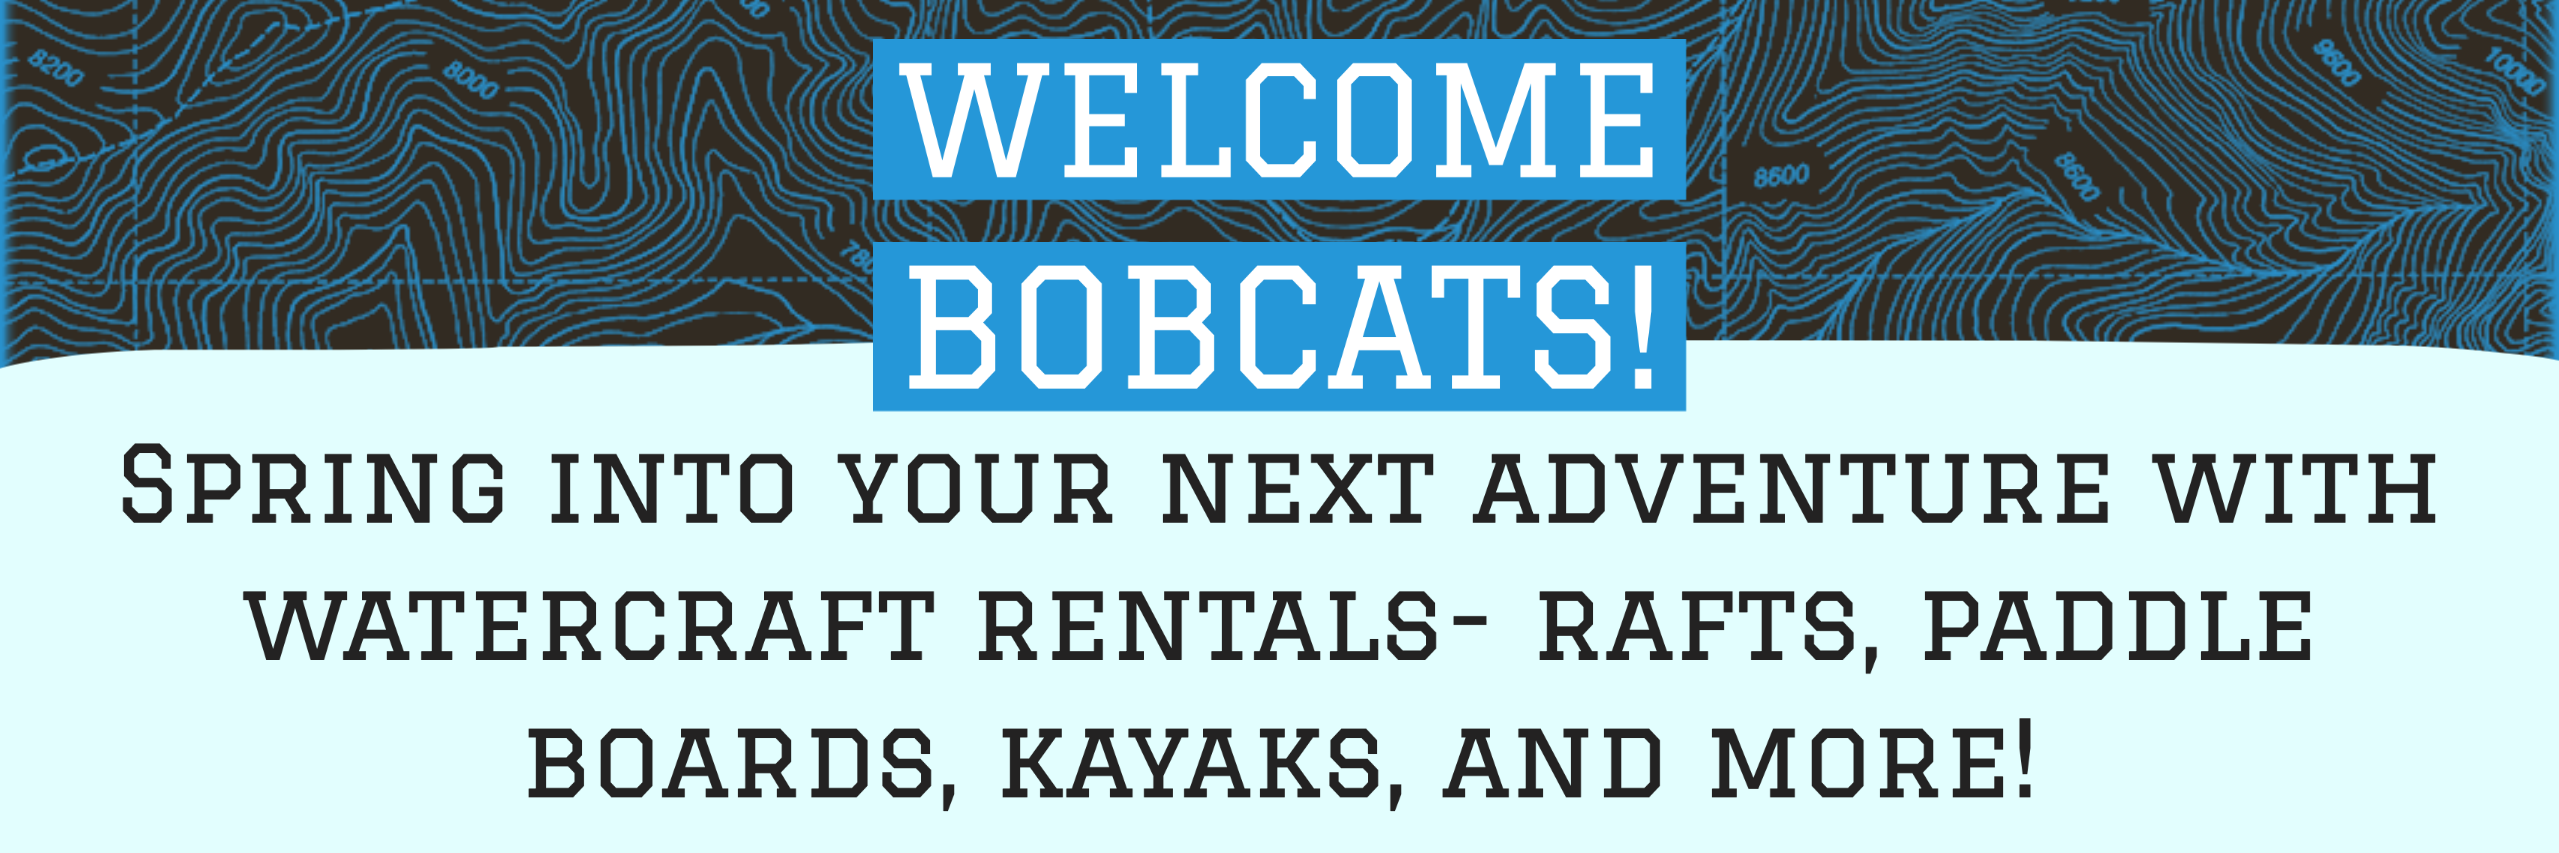 Spring into your next adventure with watercraft rentals- rafts, paddle boards, kayaks, and more!